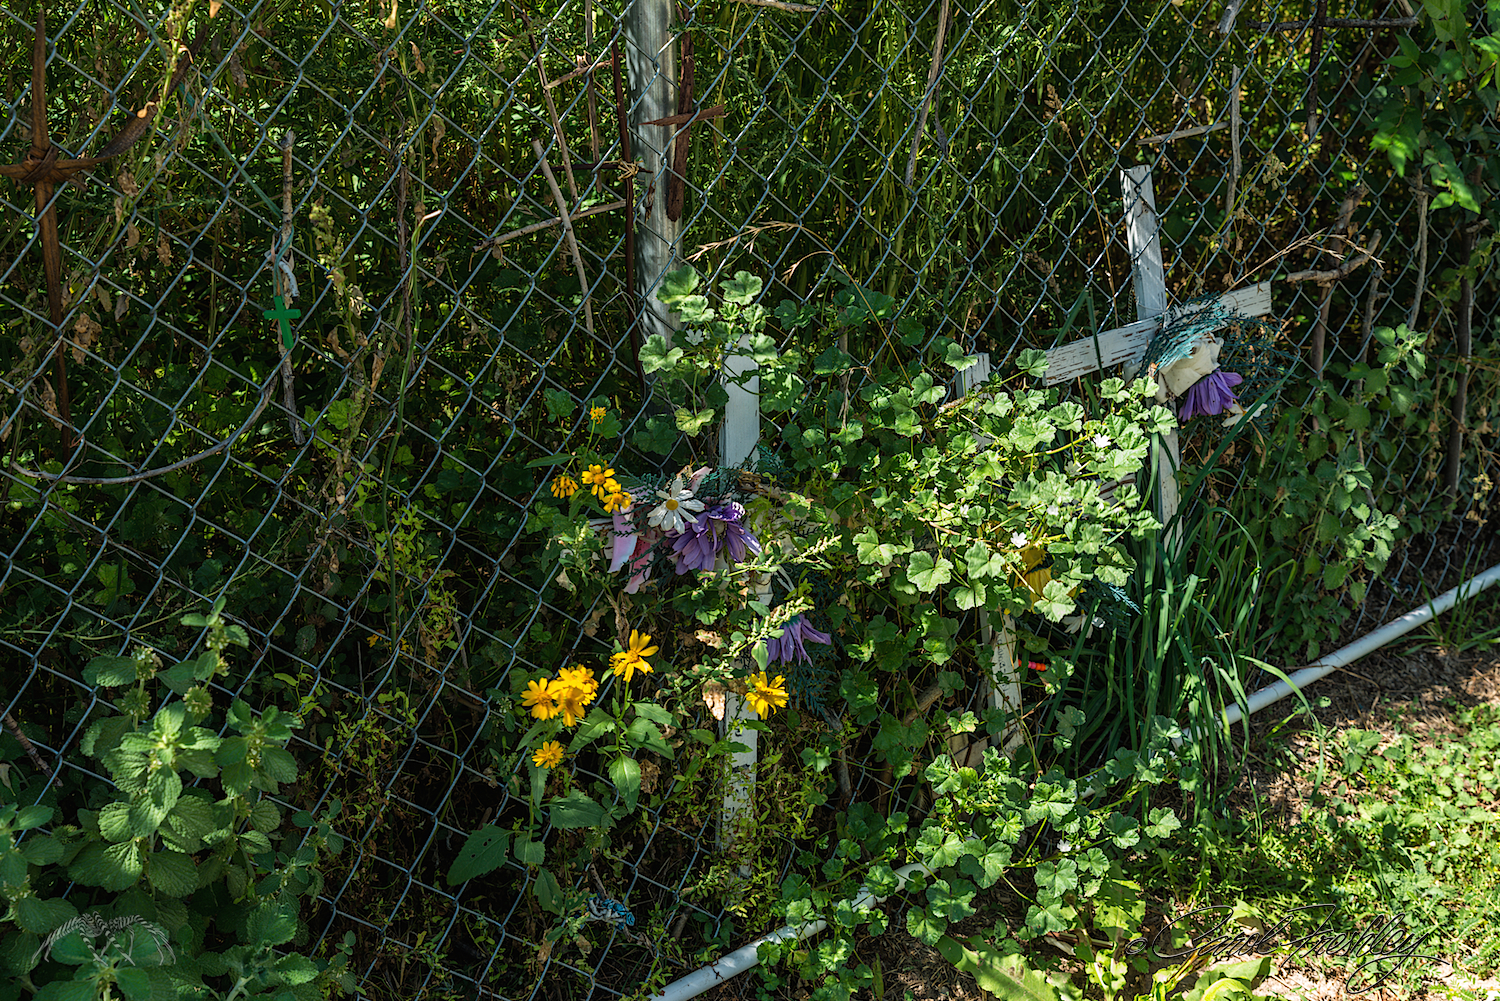 Crosses, flowers and rosaries are woven into the fence along the walkway from the parking lot. Personal items such as these are found everywhere, left behind by pilgrims in loving memory or in hopes that their prayers for healing may be answered.